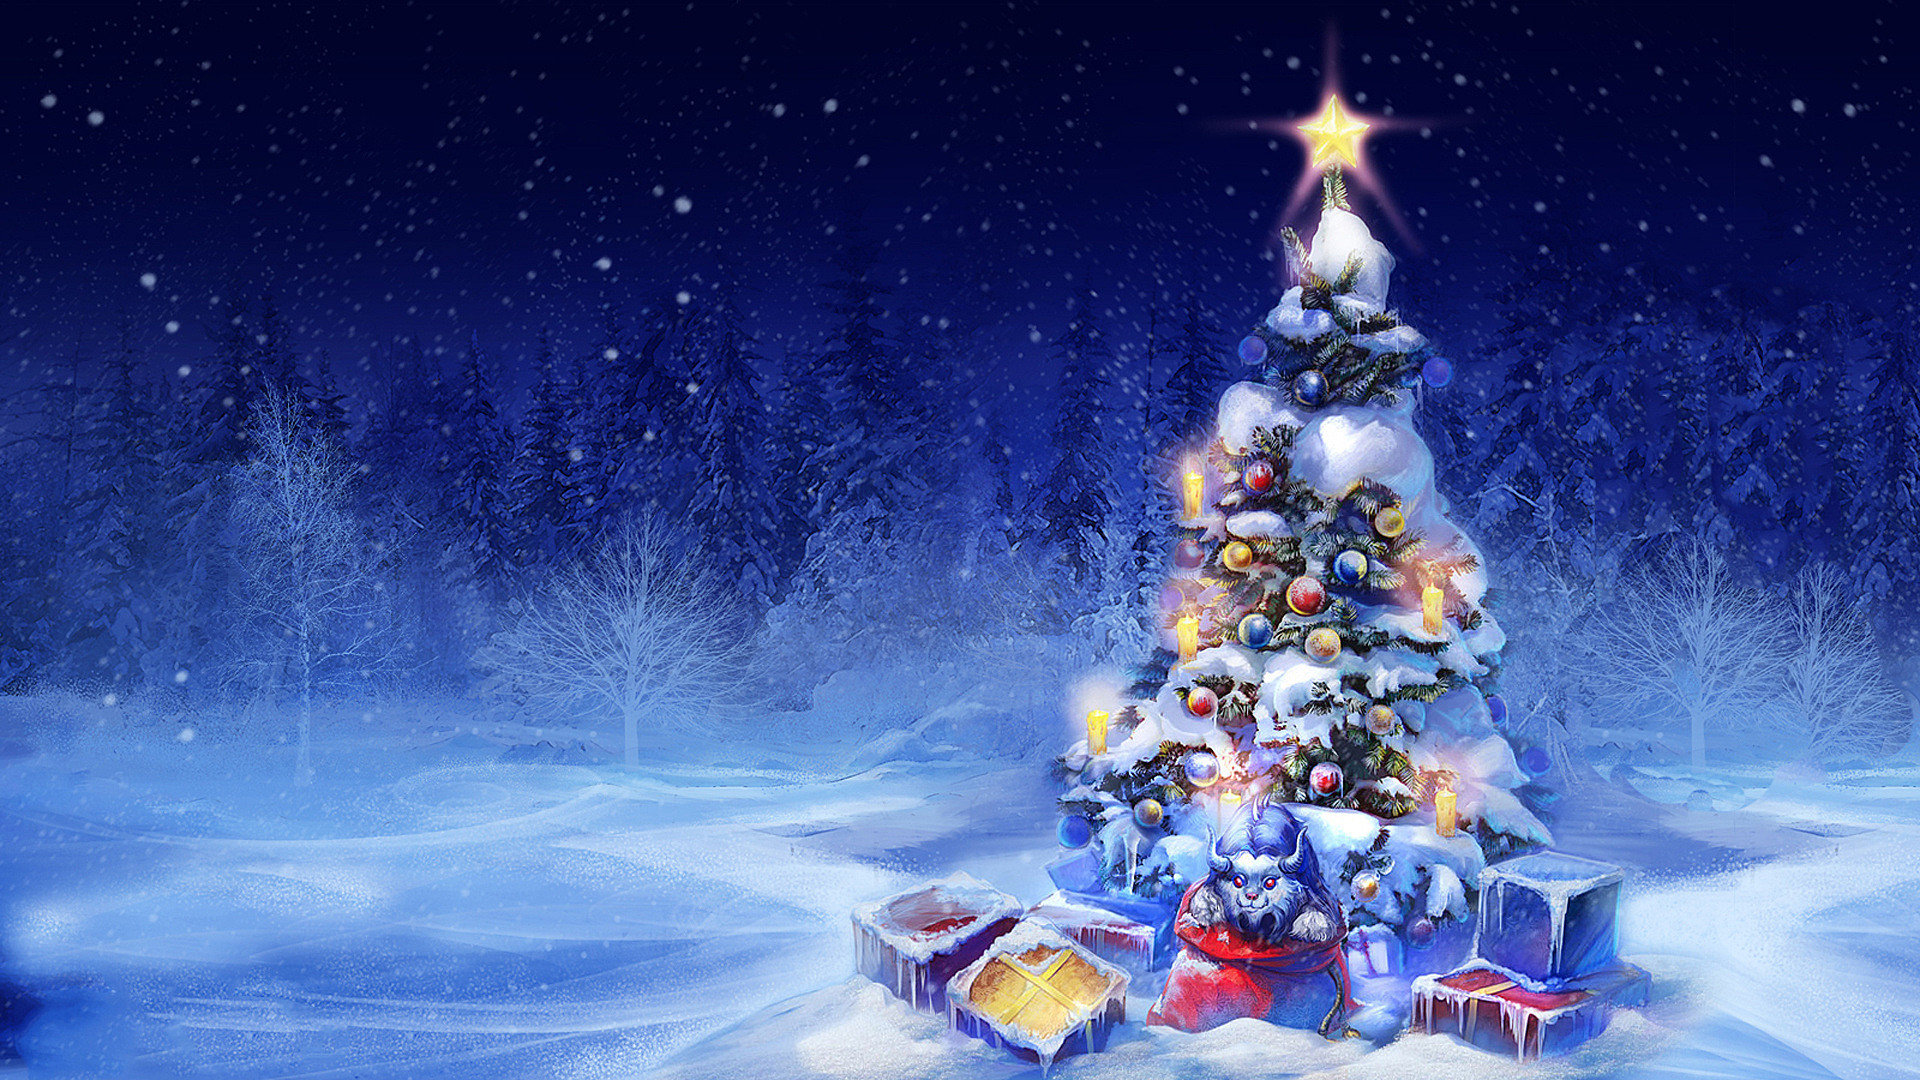 Christmas Background Hd Images.High Resolution Christmas Hd 1080p Background Id 435061 For Pc